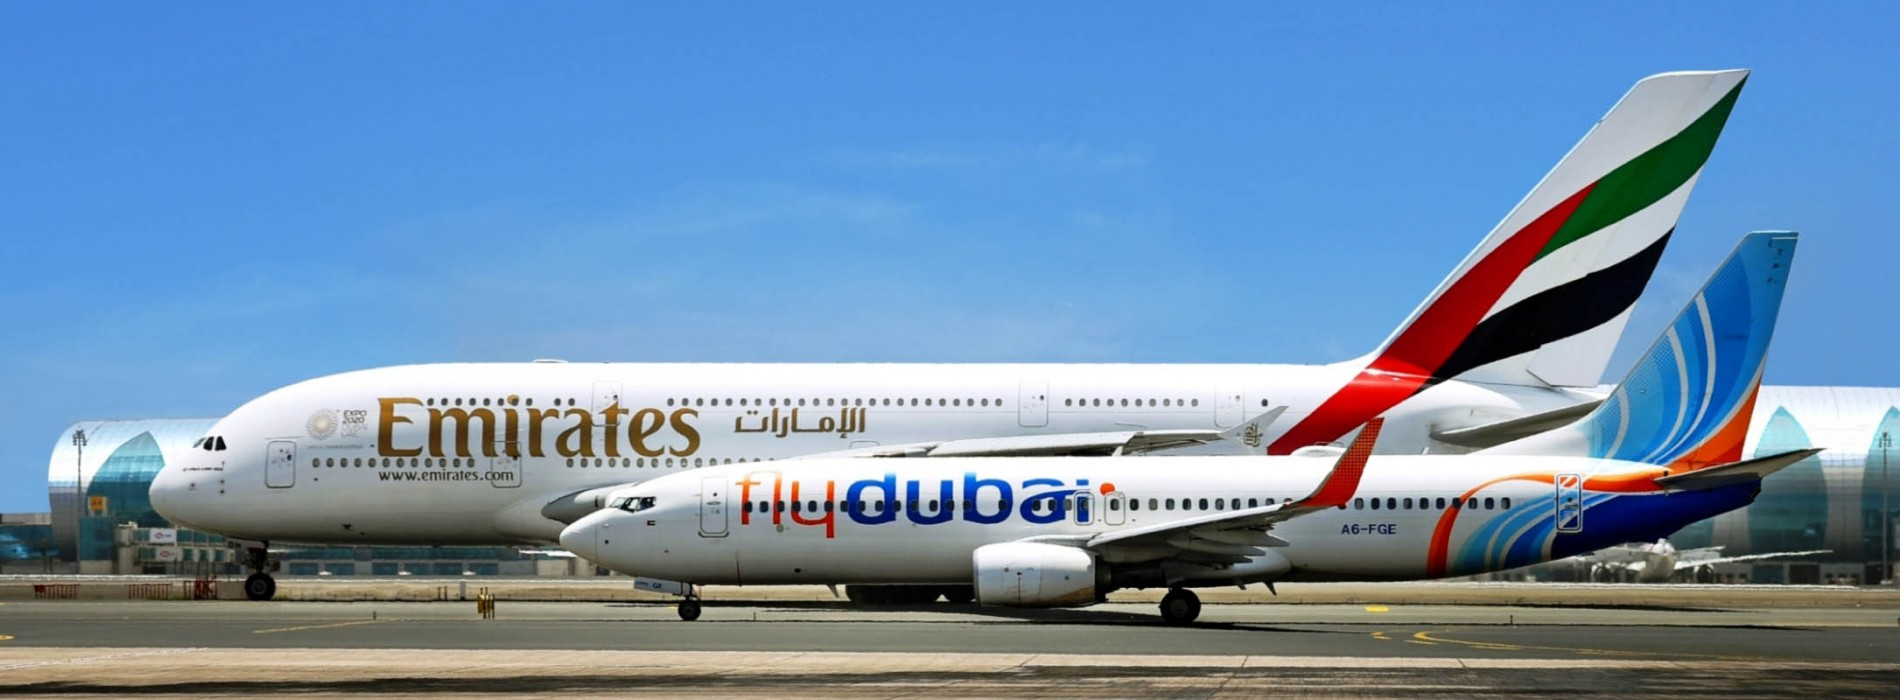 Emirates Skywards expands loyalty programme to include both Emirates airline and flydubai